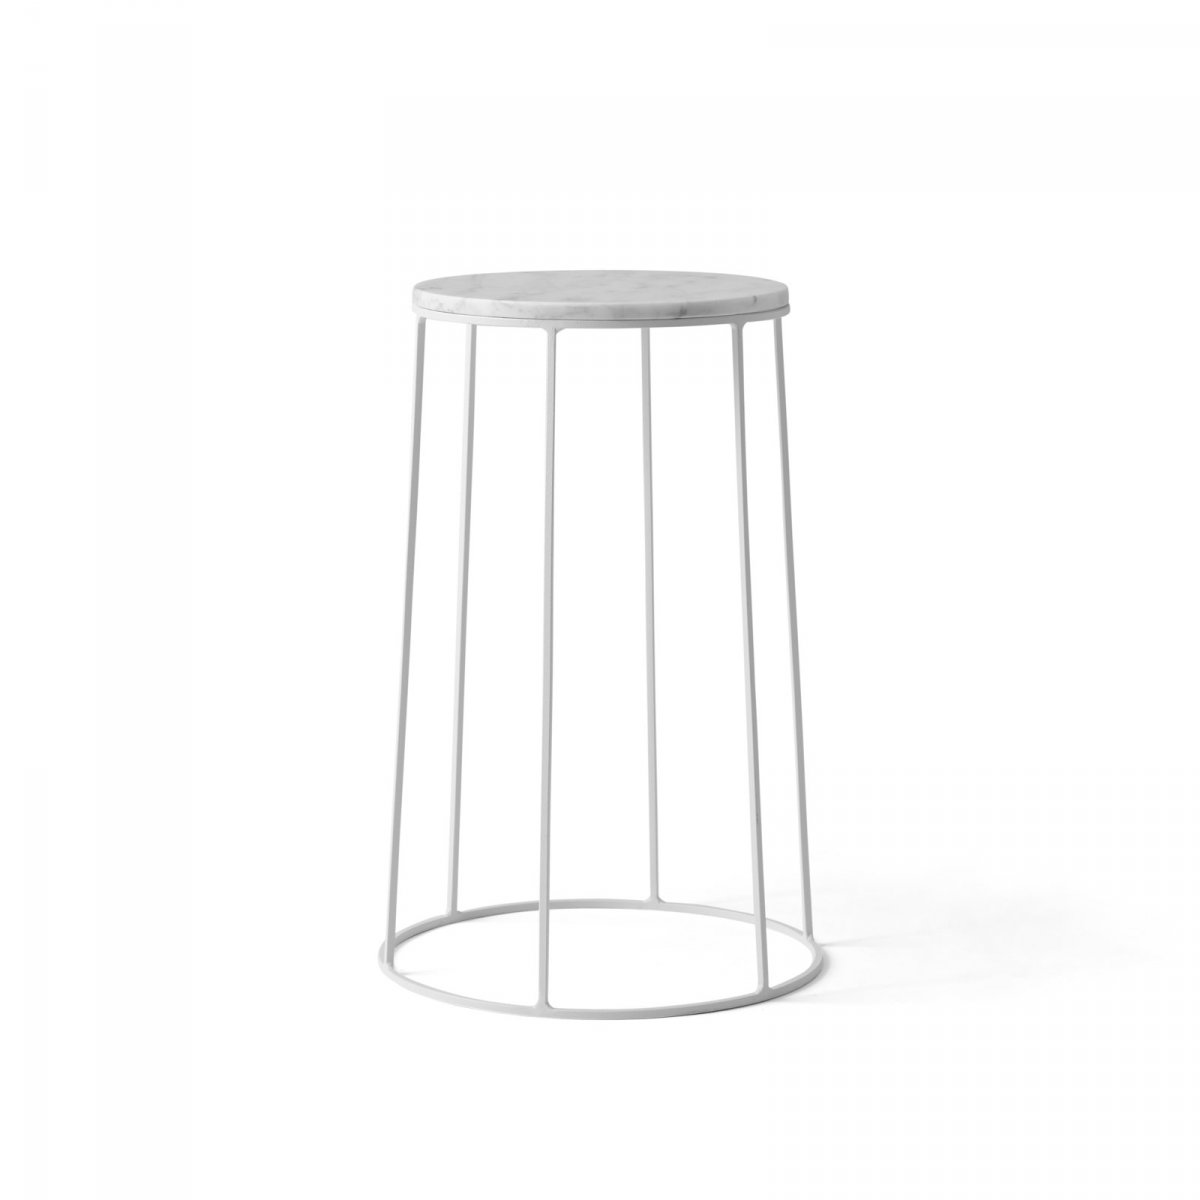 Wire Marble Top and Base, white, medium.